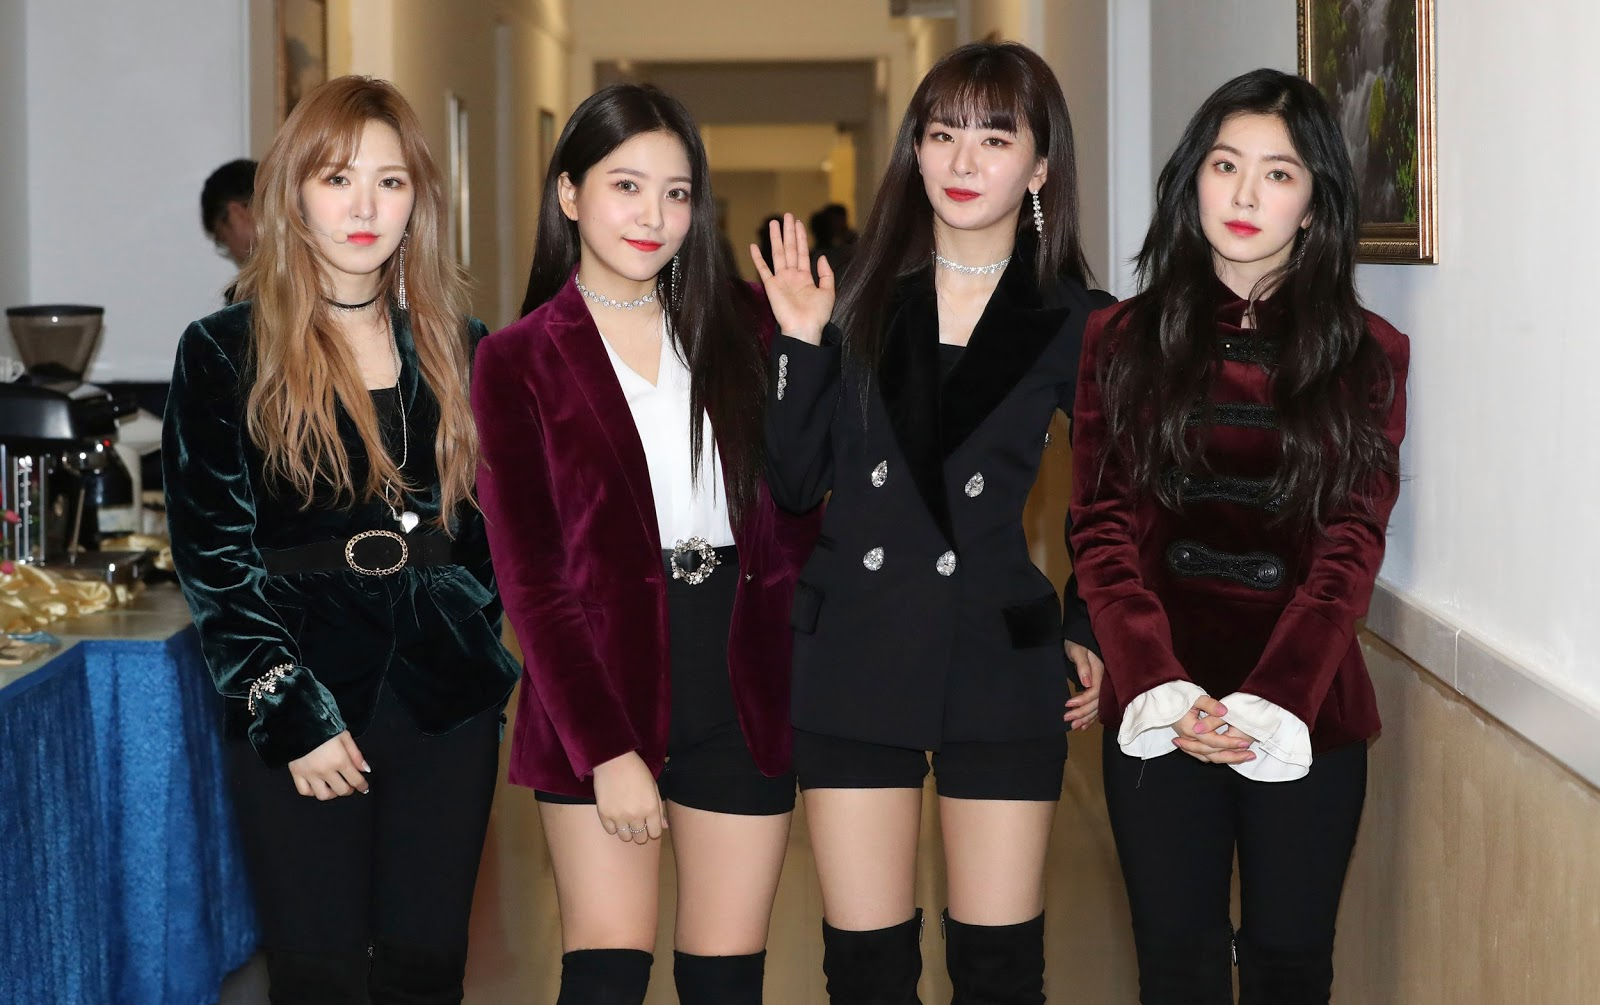 165264bd171 Joy, as well as the other Red Velvet members, had to endure a difficult  time due to a misunderstanding but bravely completed the Pyongyang  performance.